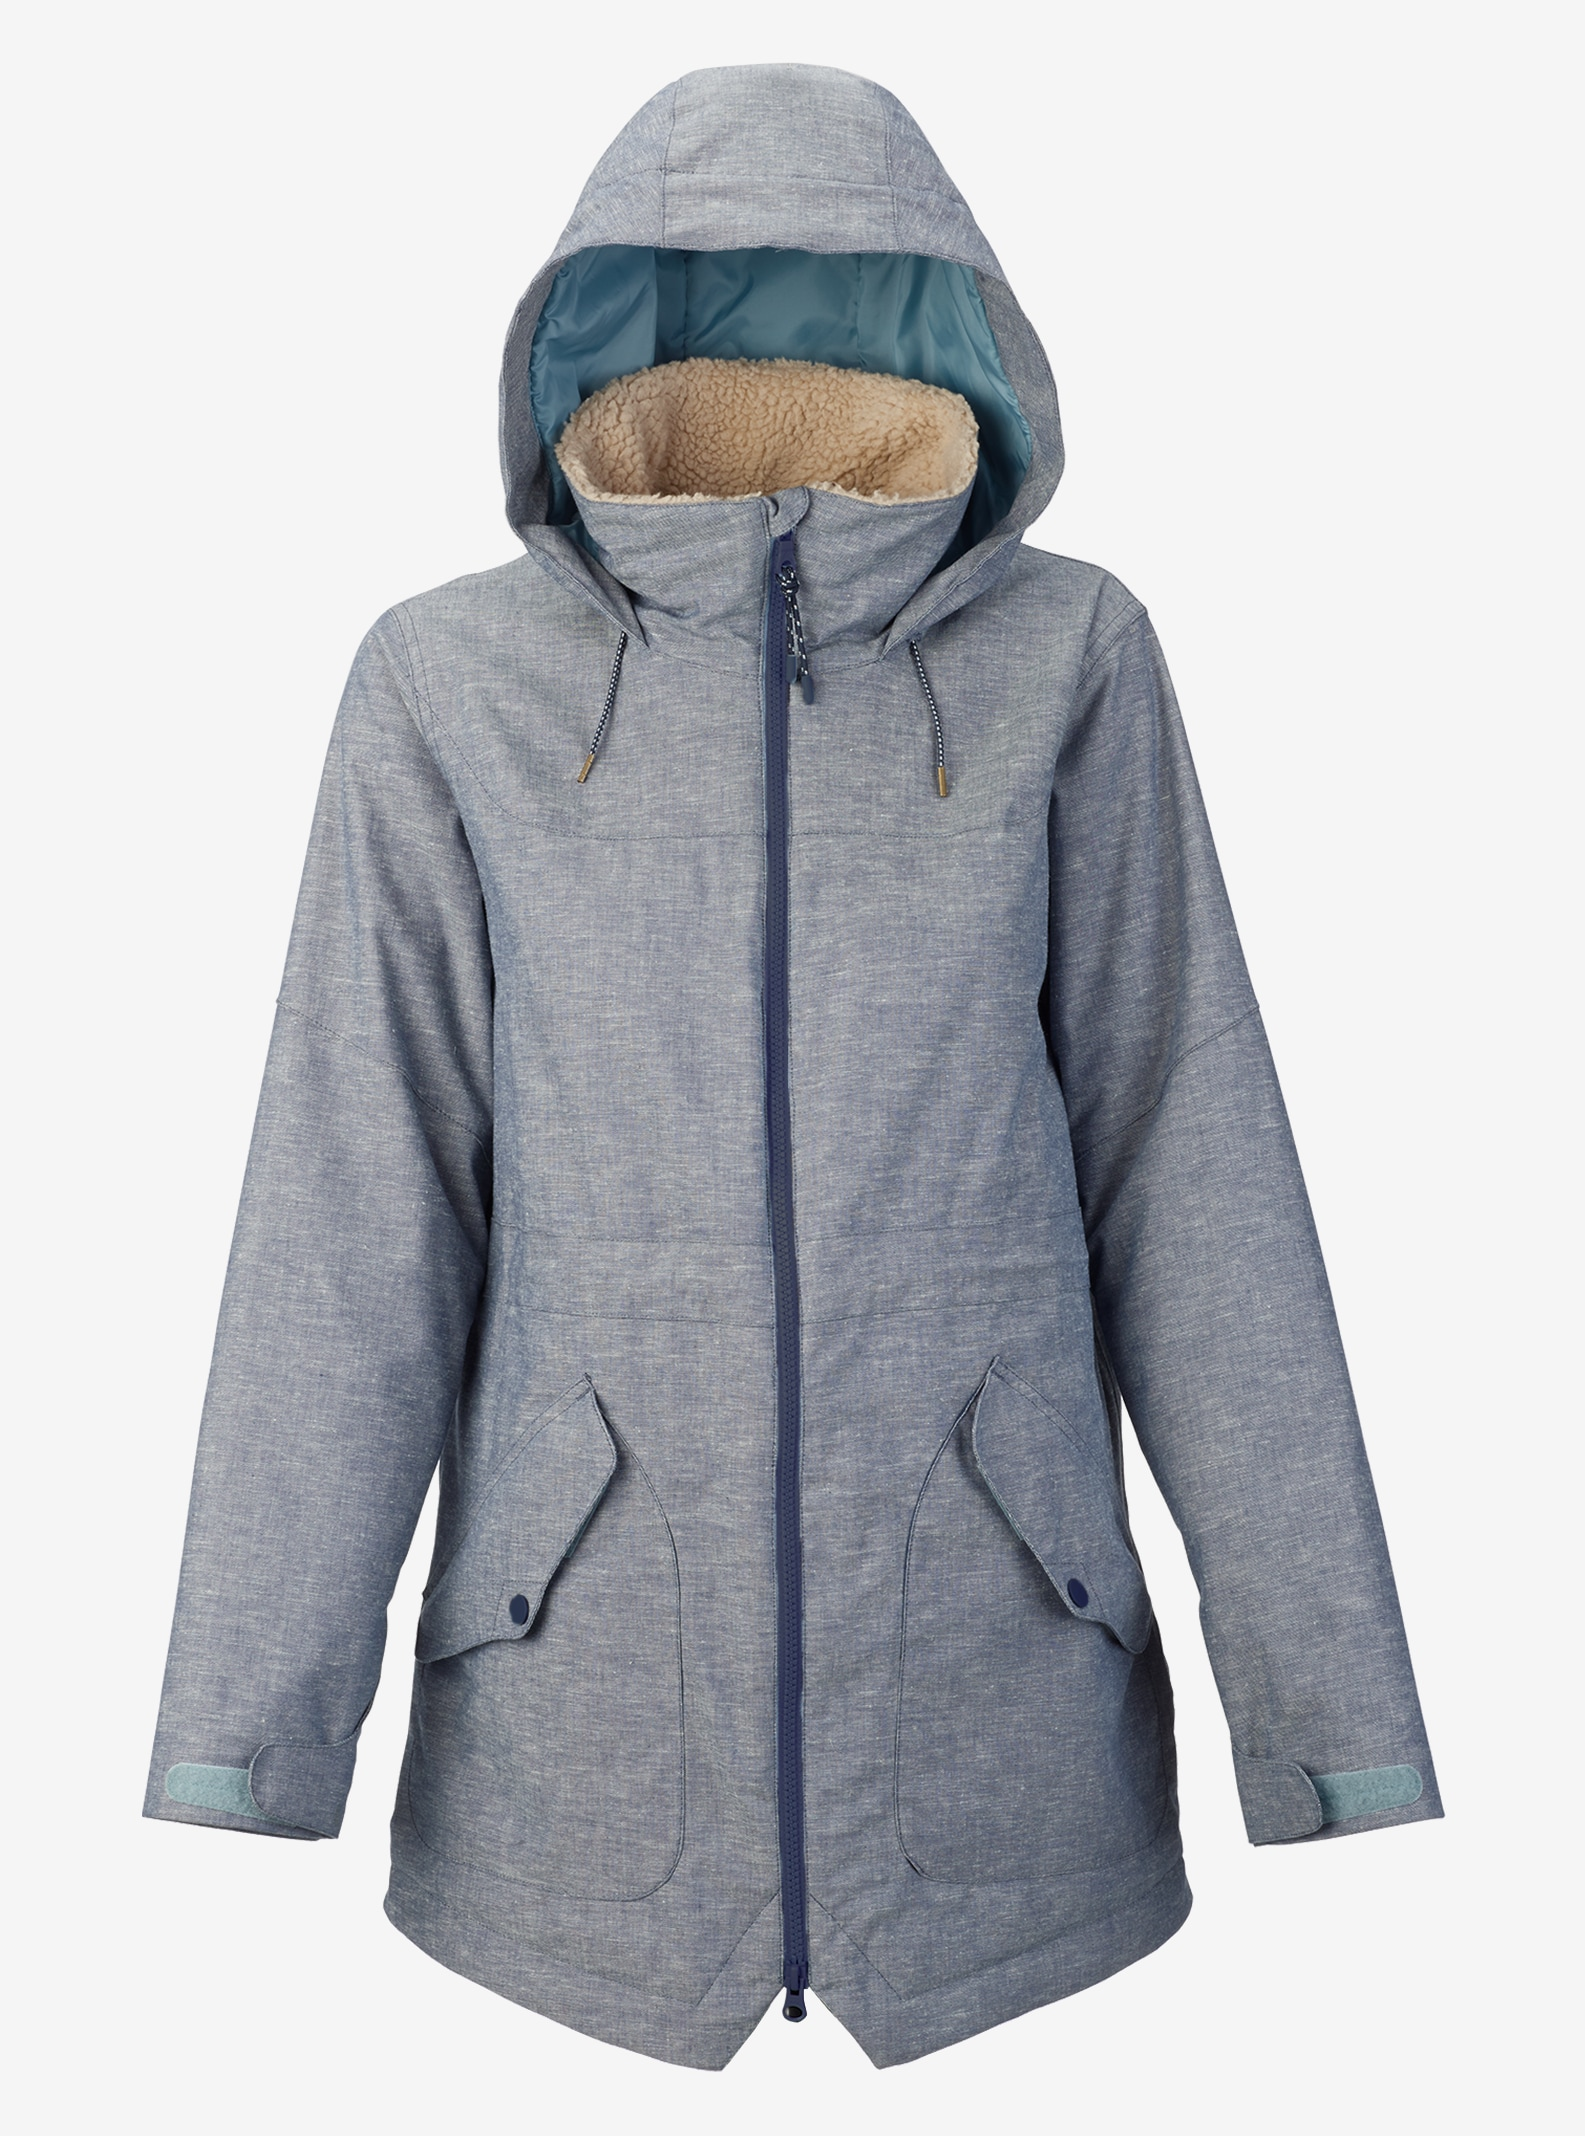 Women's Burton Prowess Jacket shown in Chambray